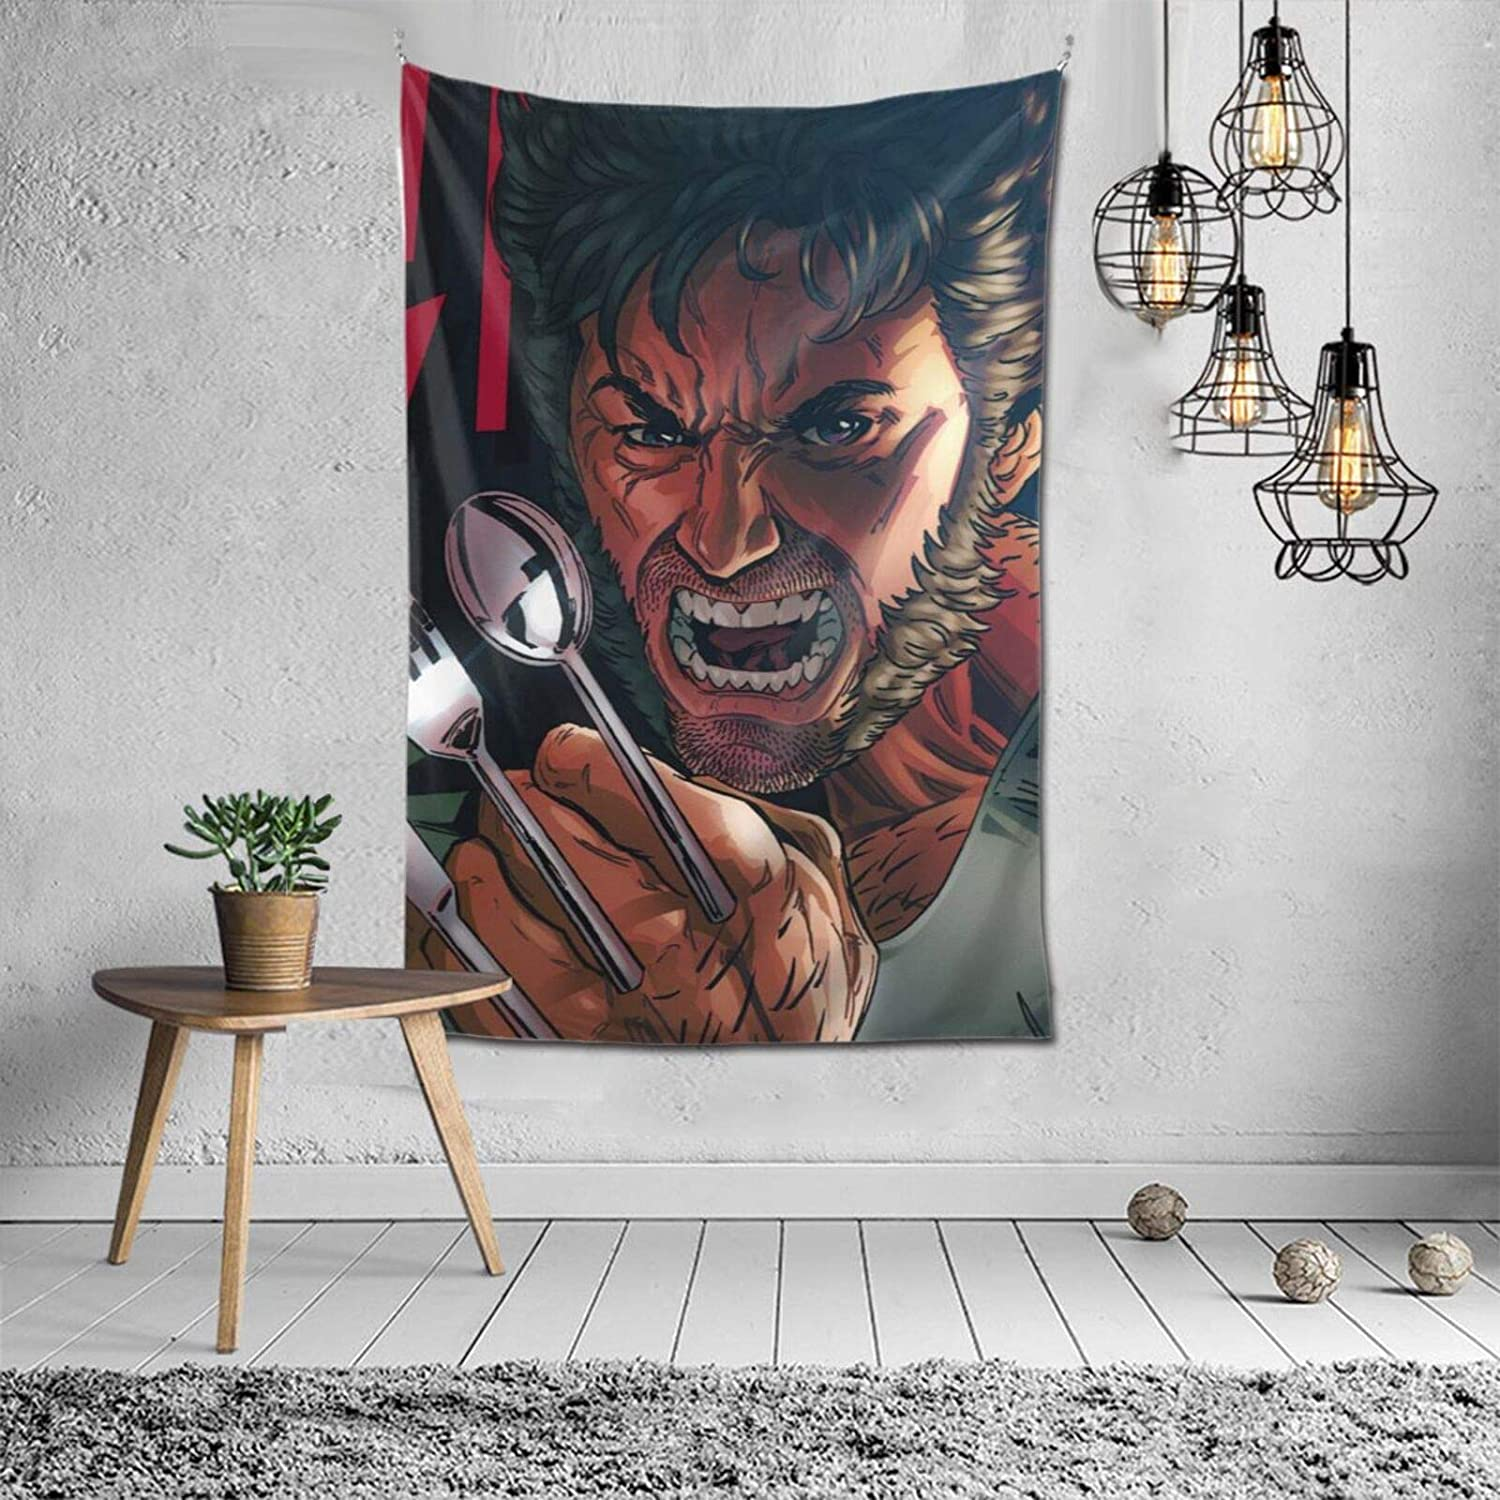 Rainbow Fart Tapestry Wolverine Spoon Claws Tapestries Large Wall Decor Art Hanging Home Decorations Dorm Psychedelic Blanket for Bedroom Living Room Multi-Color 60x40inch